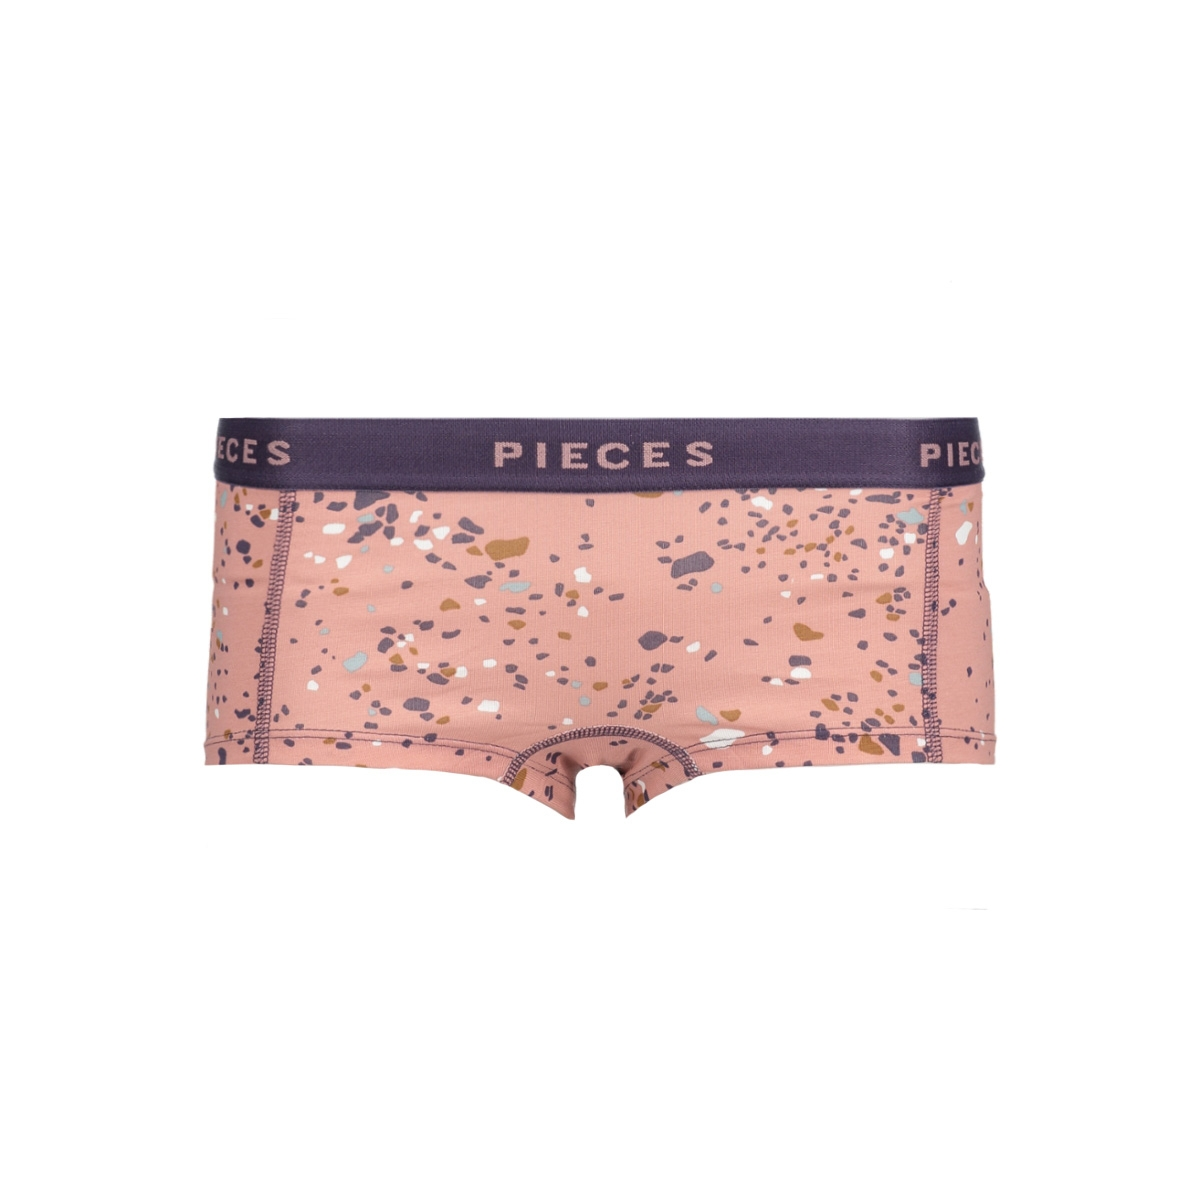 pclogo lady boxers 14-224 glam 17086475 pieces ondergoed ash rose/comb b